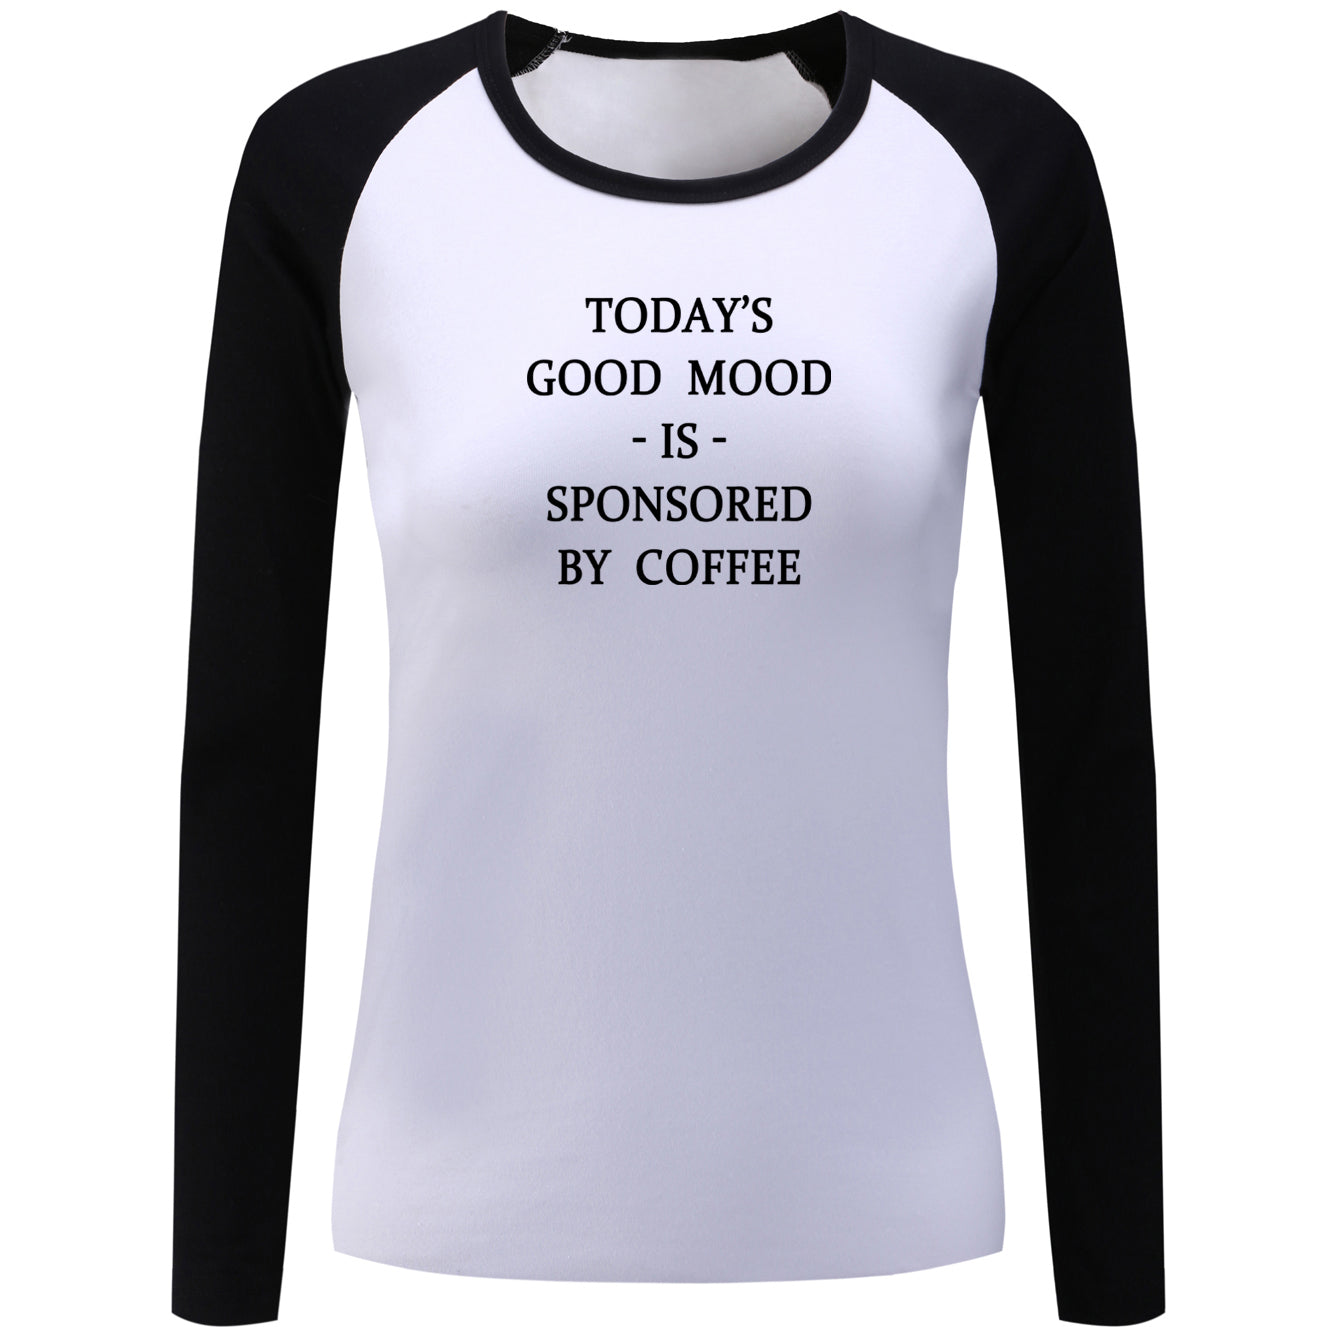 Today's Good Mood is Sponsored By Coffee T Shirt-Sunshine's Boutique & Gifts